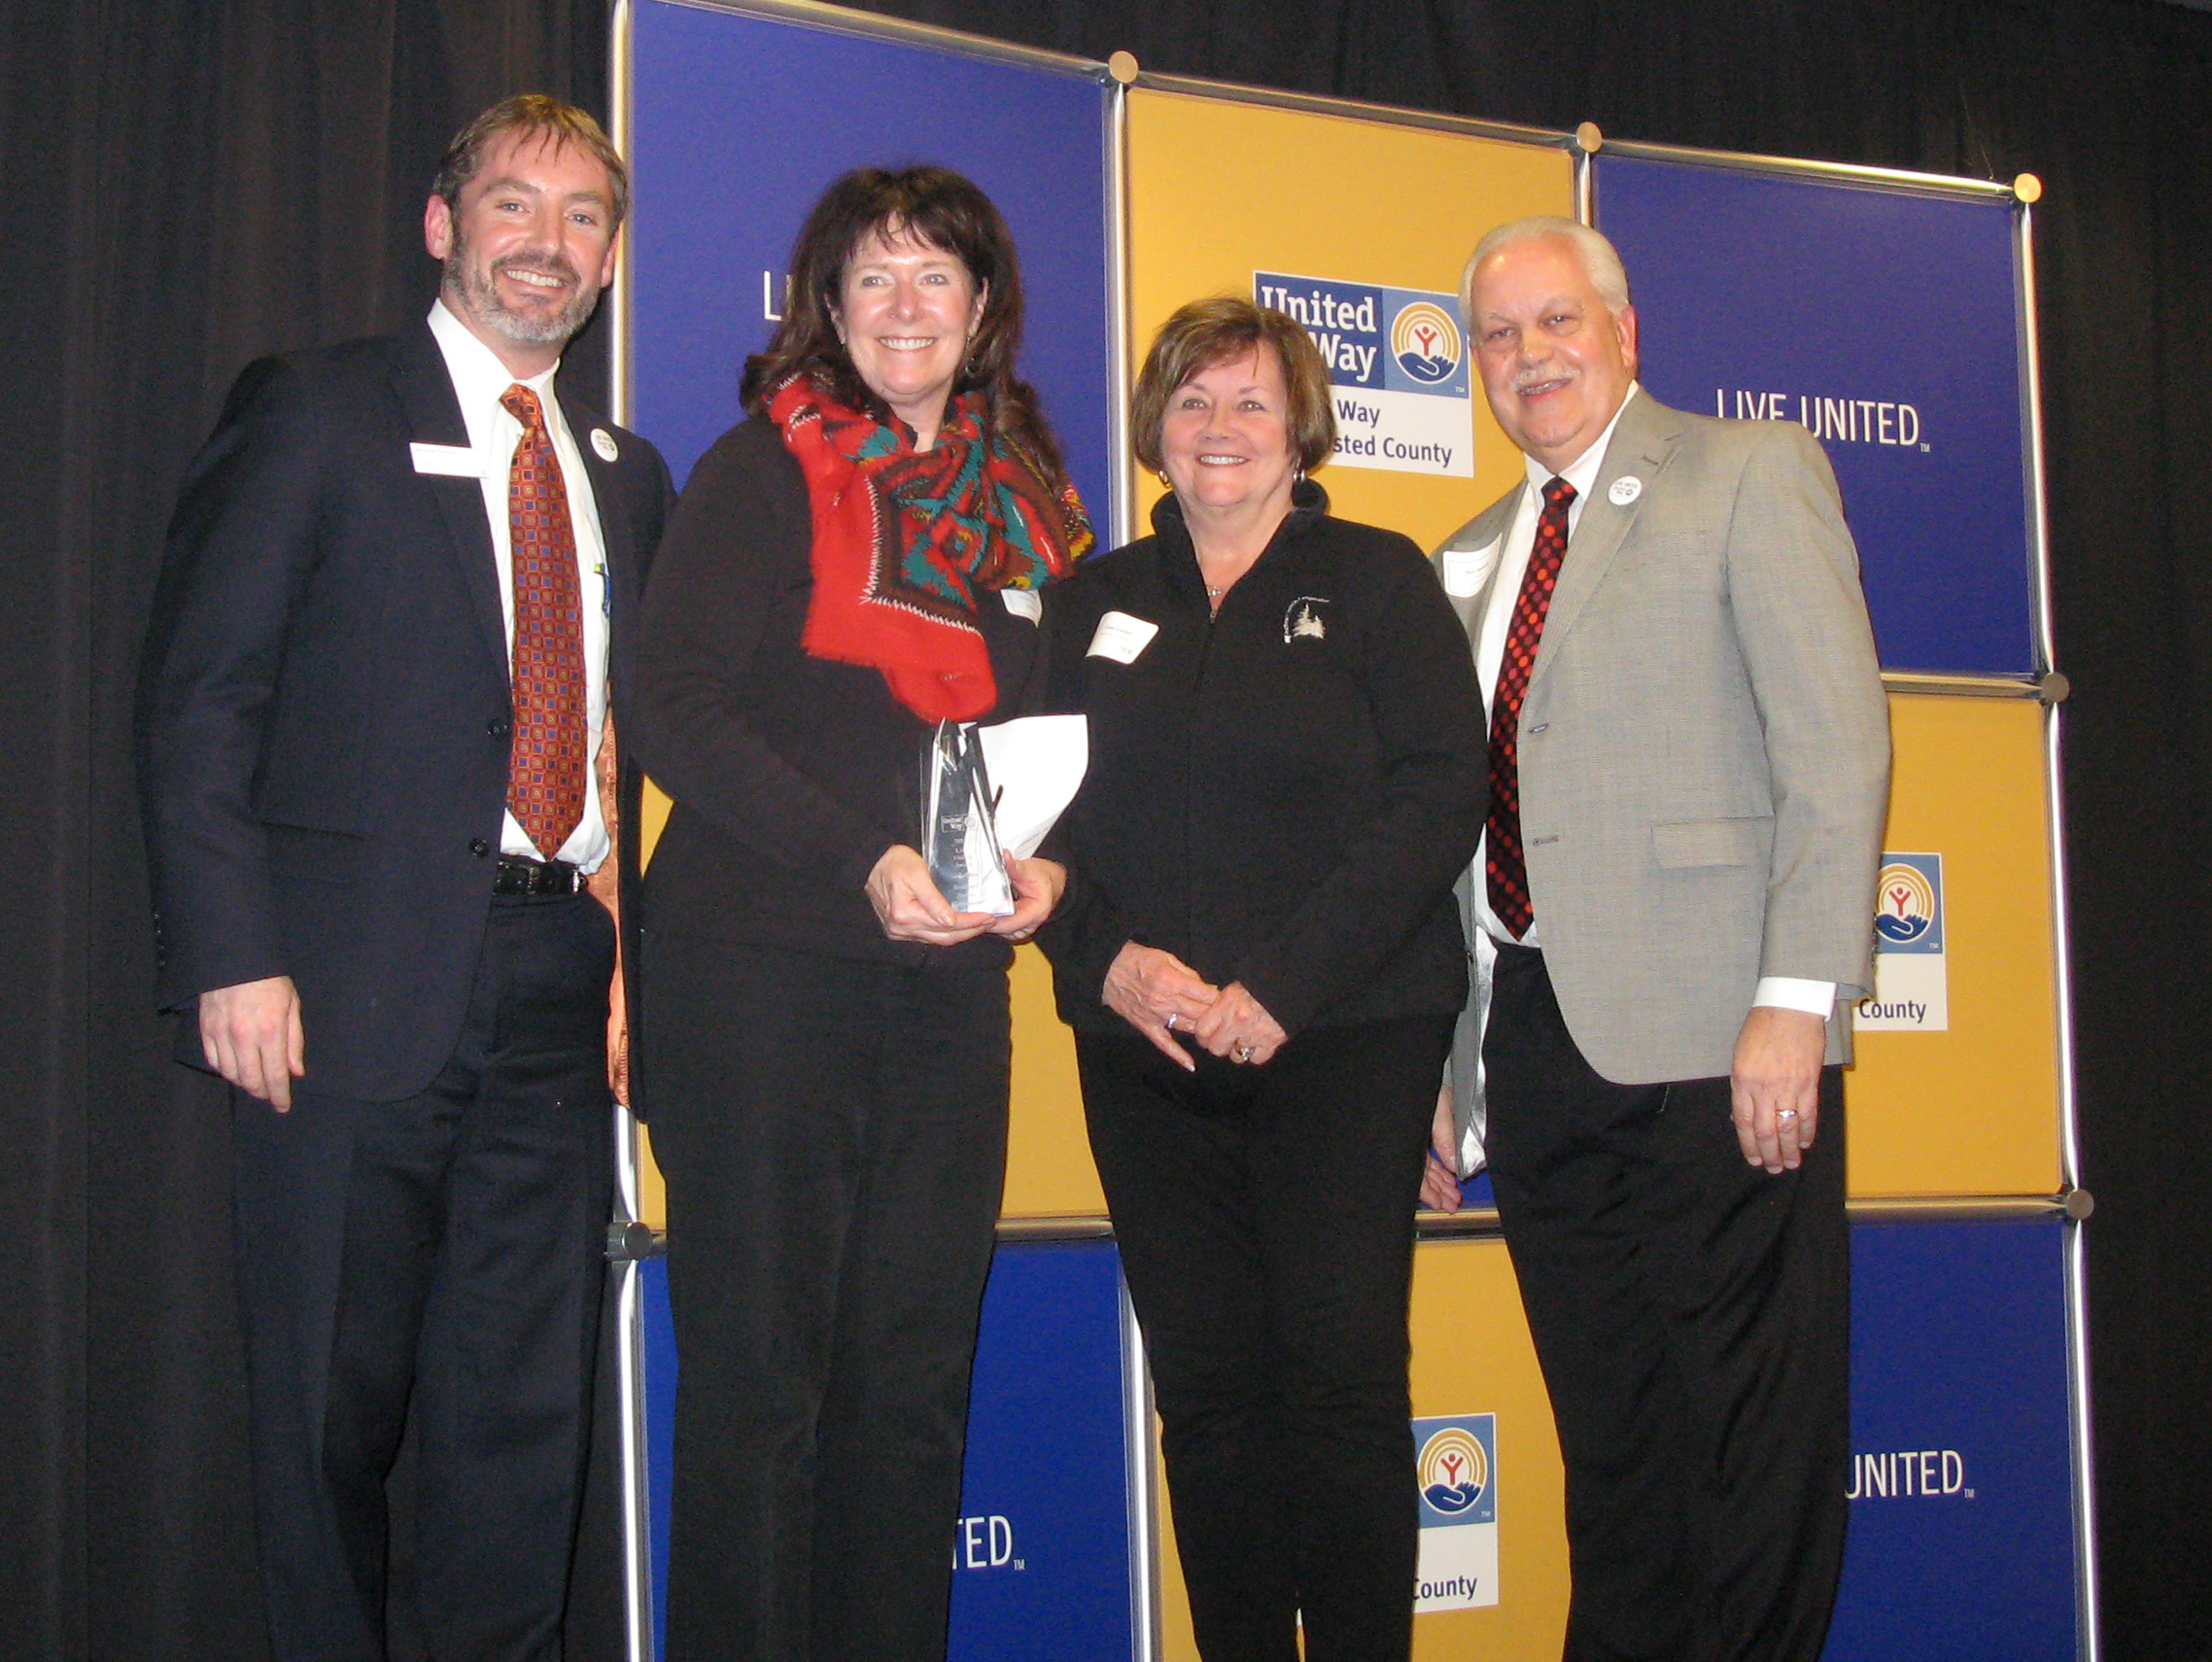 Photo: Award presented to Southeast Service Cooperative /United Way